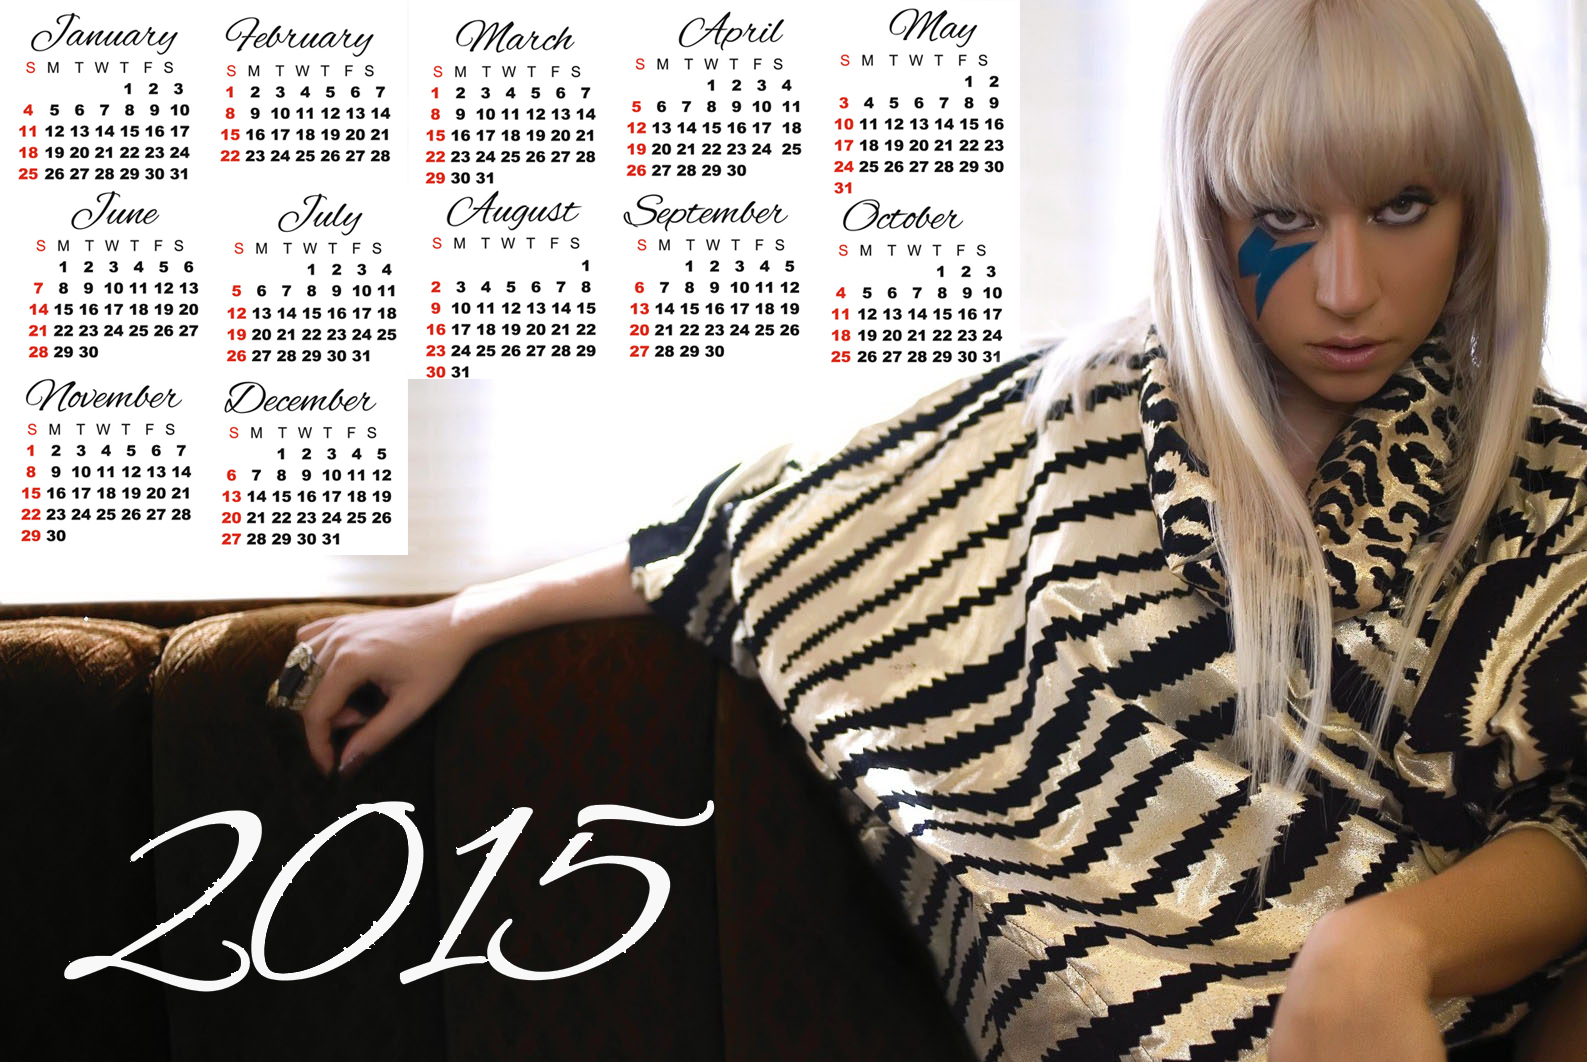 Lady Gaga black white dress calendar 2015